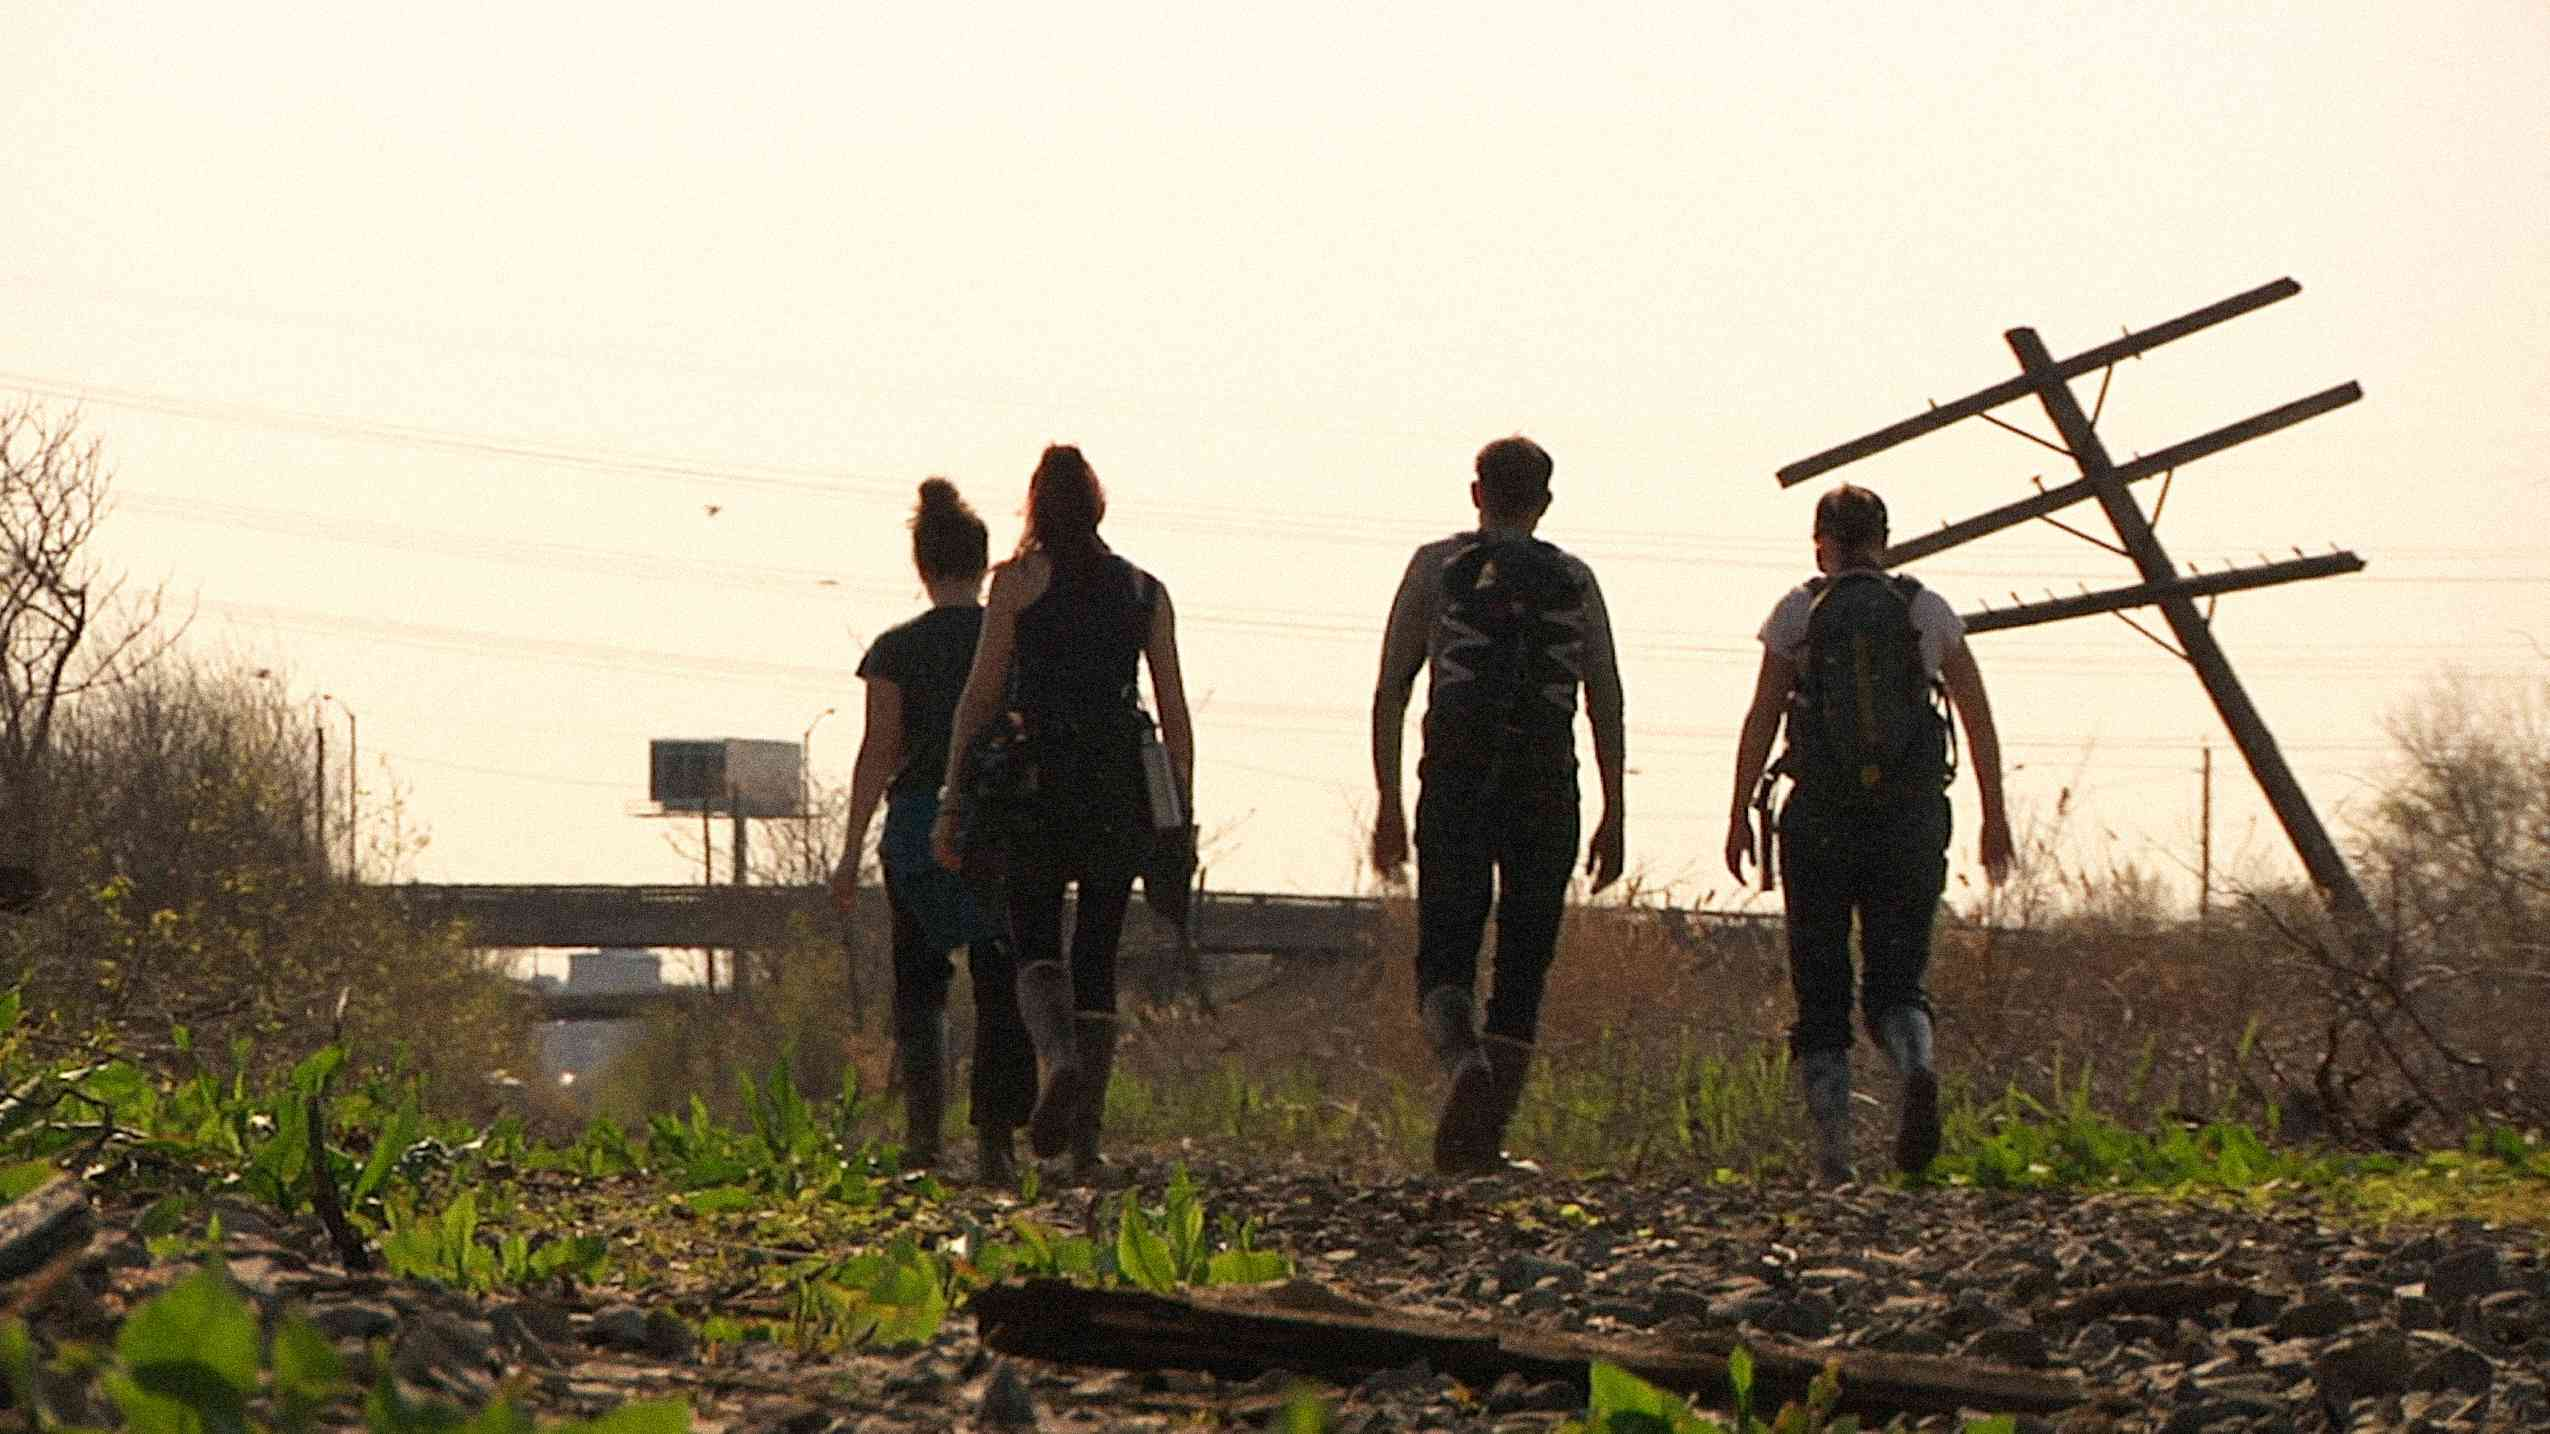 Four members of the Back Water team walk into the light with their backs facing the viewer